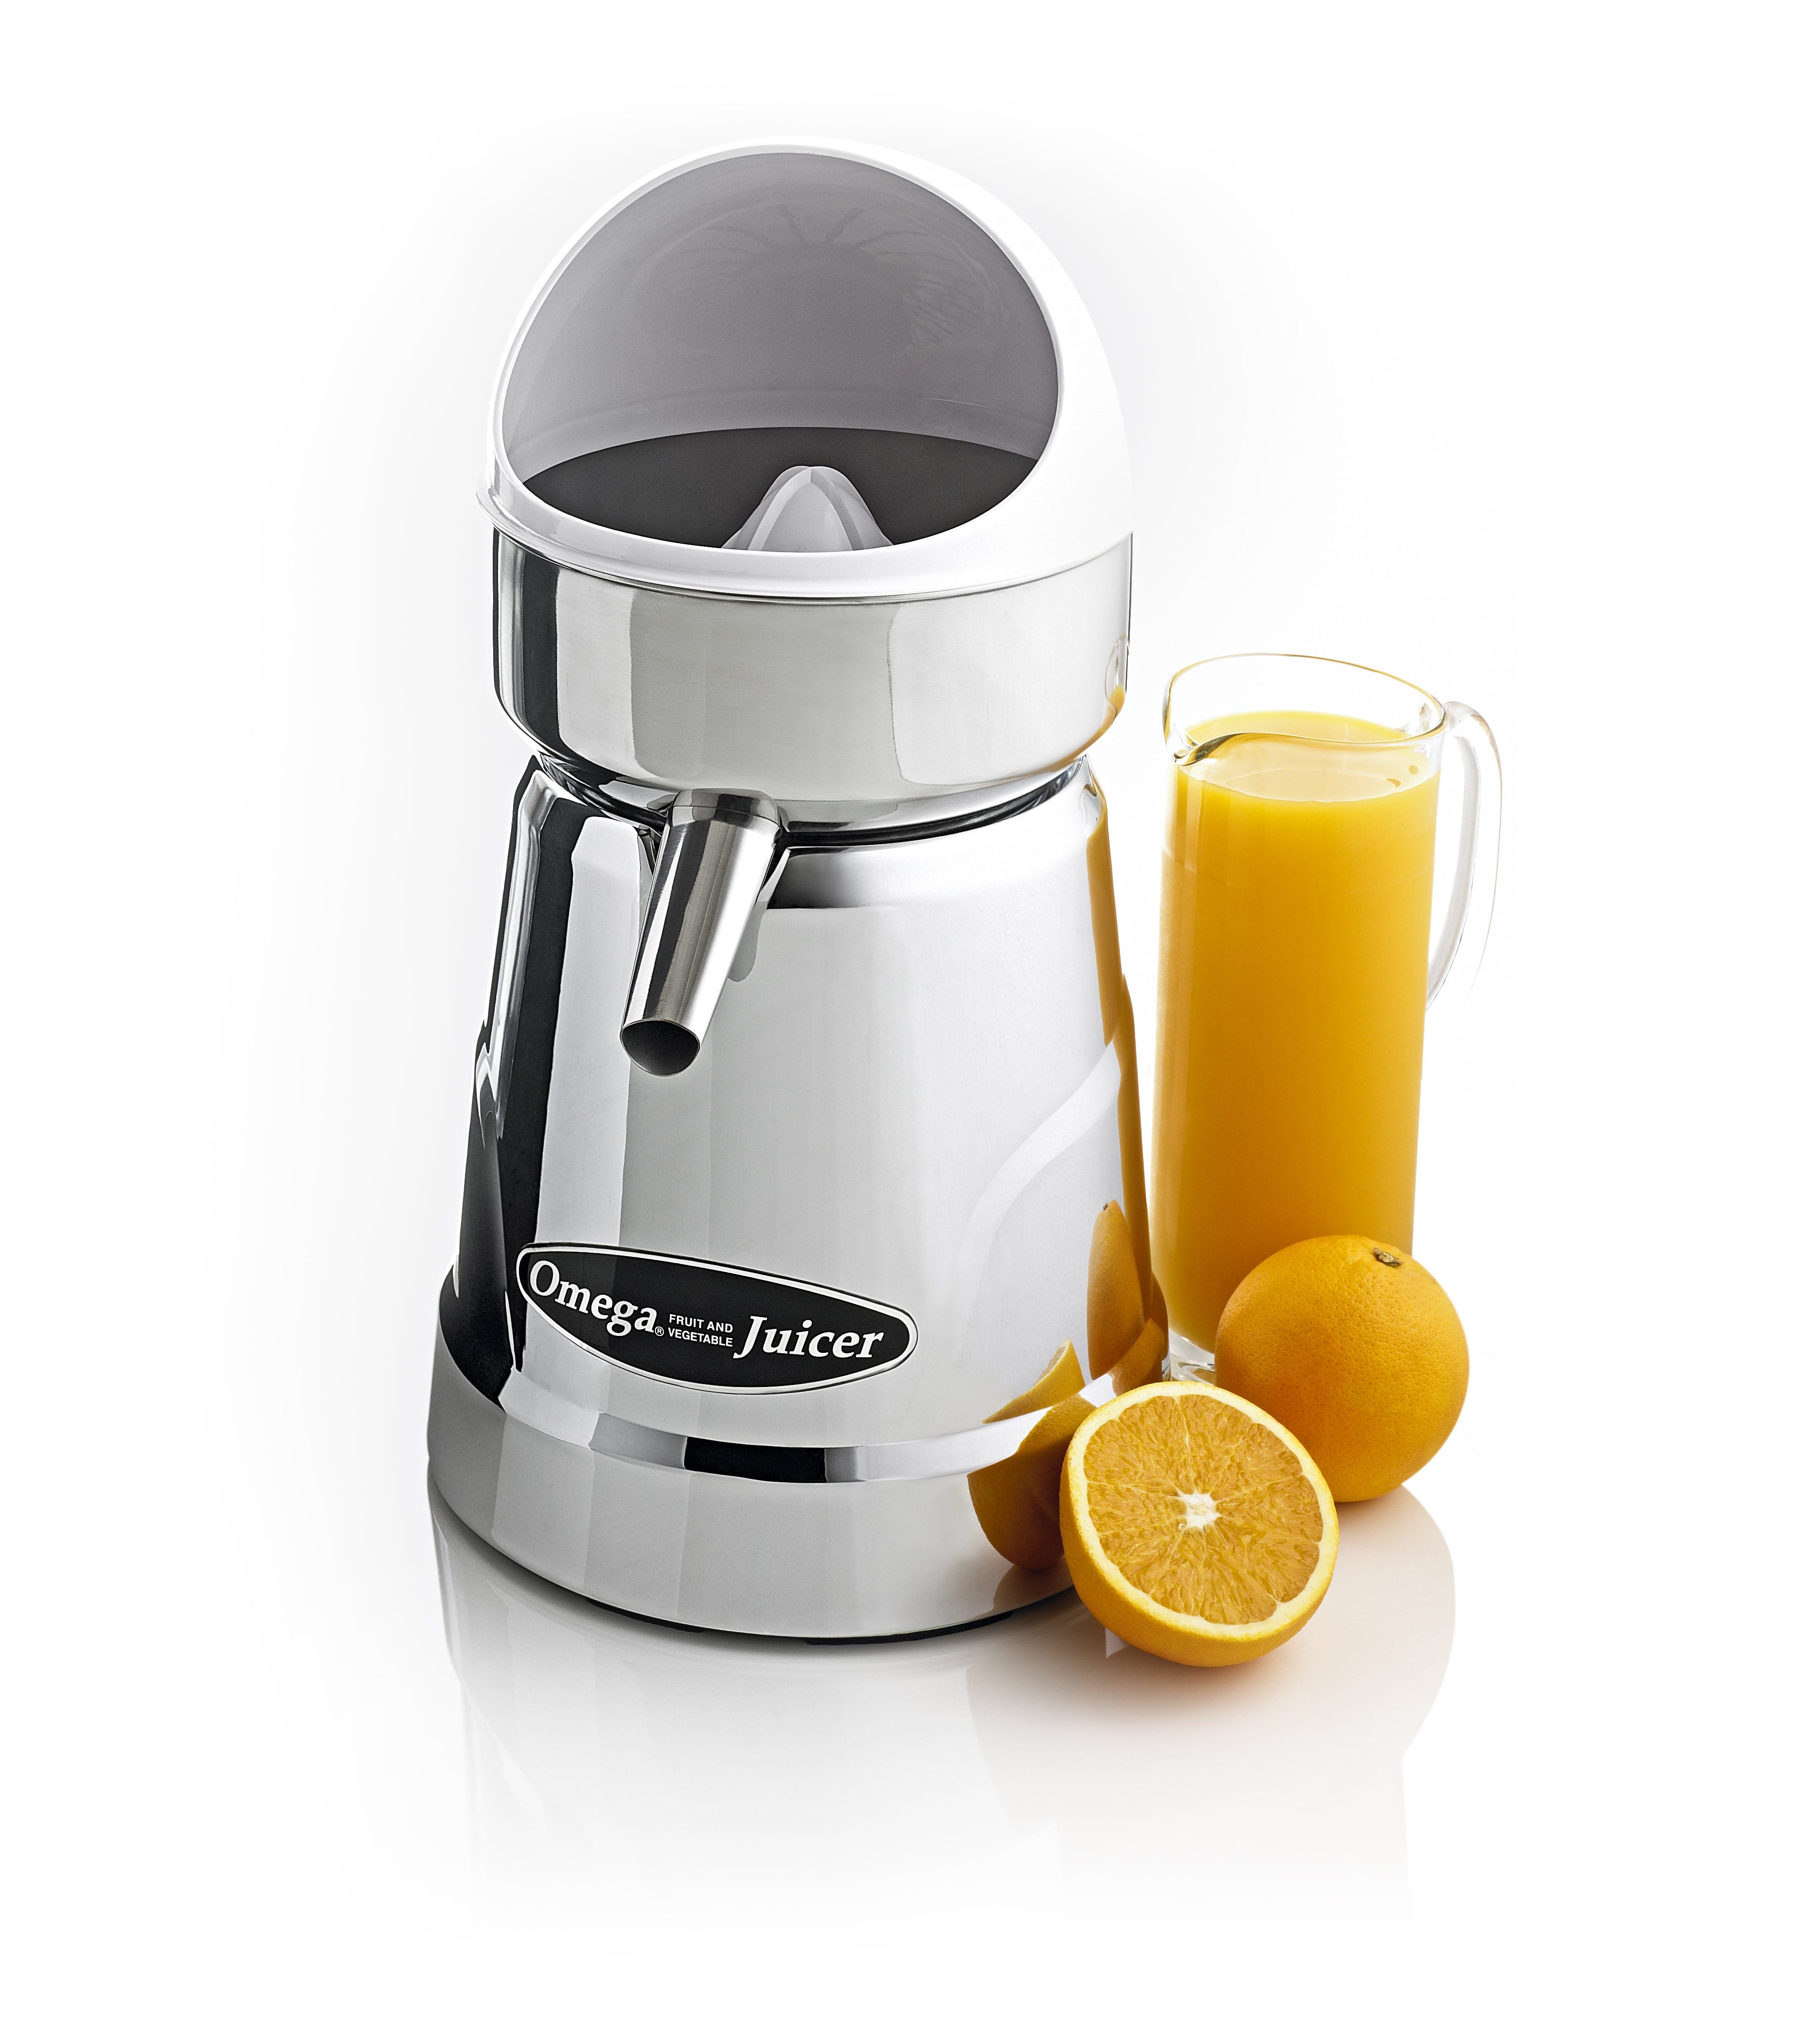 Hurom Slow Juicer Myer : Selecao de eletrodomEsticos: Breville juicers myers